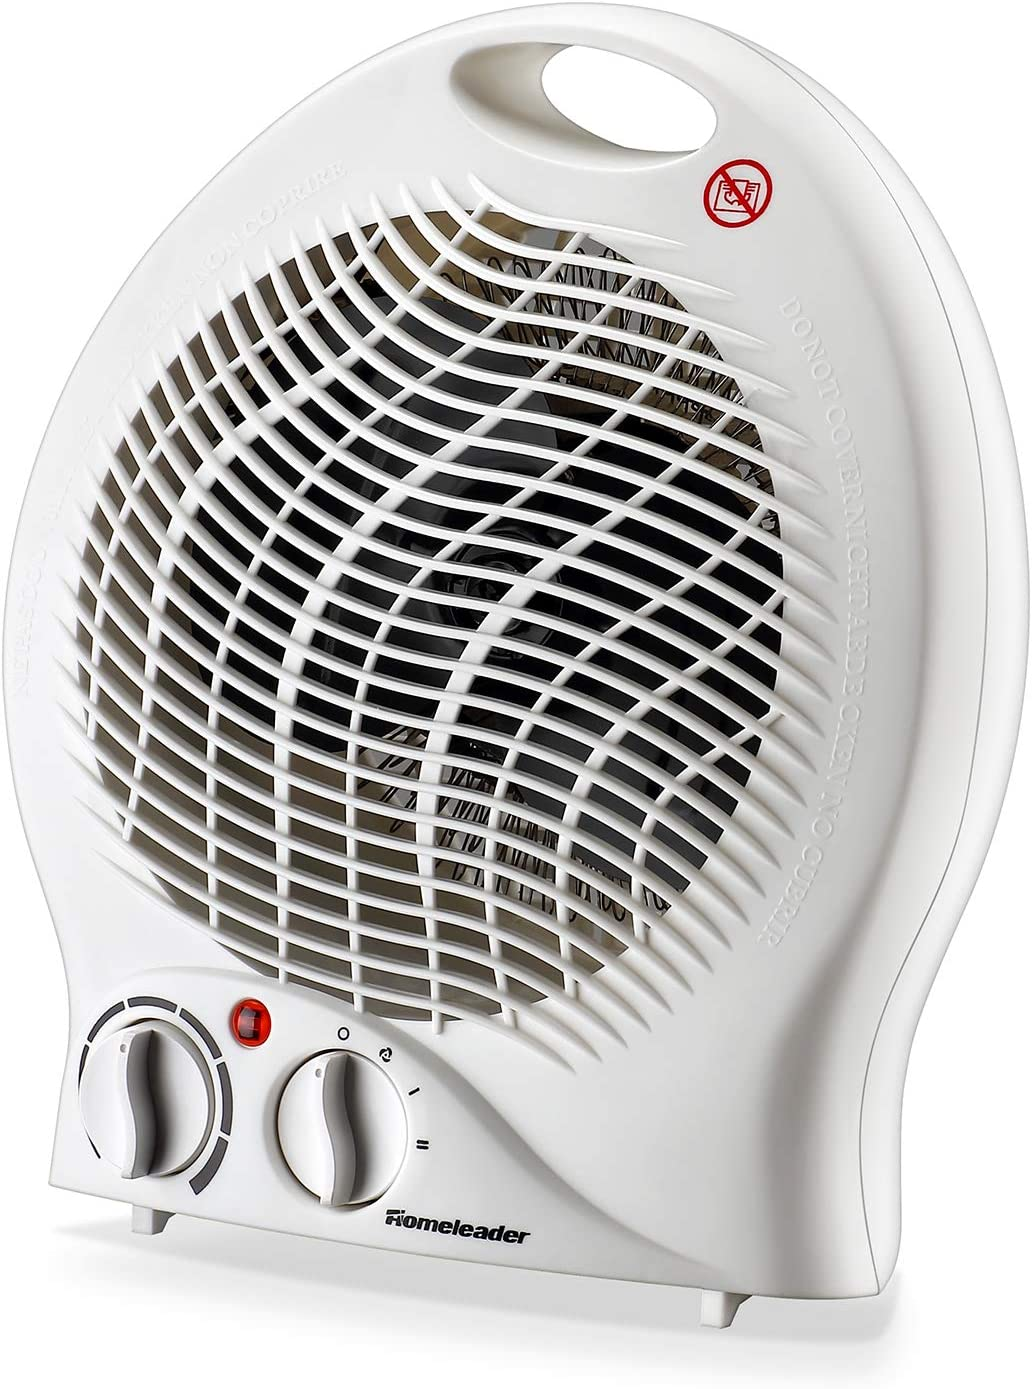 Portable Fan Heater, Homeleader Small Space Heater with Thermostat, Tabletop/Floor Ceramic Heater for Office